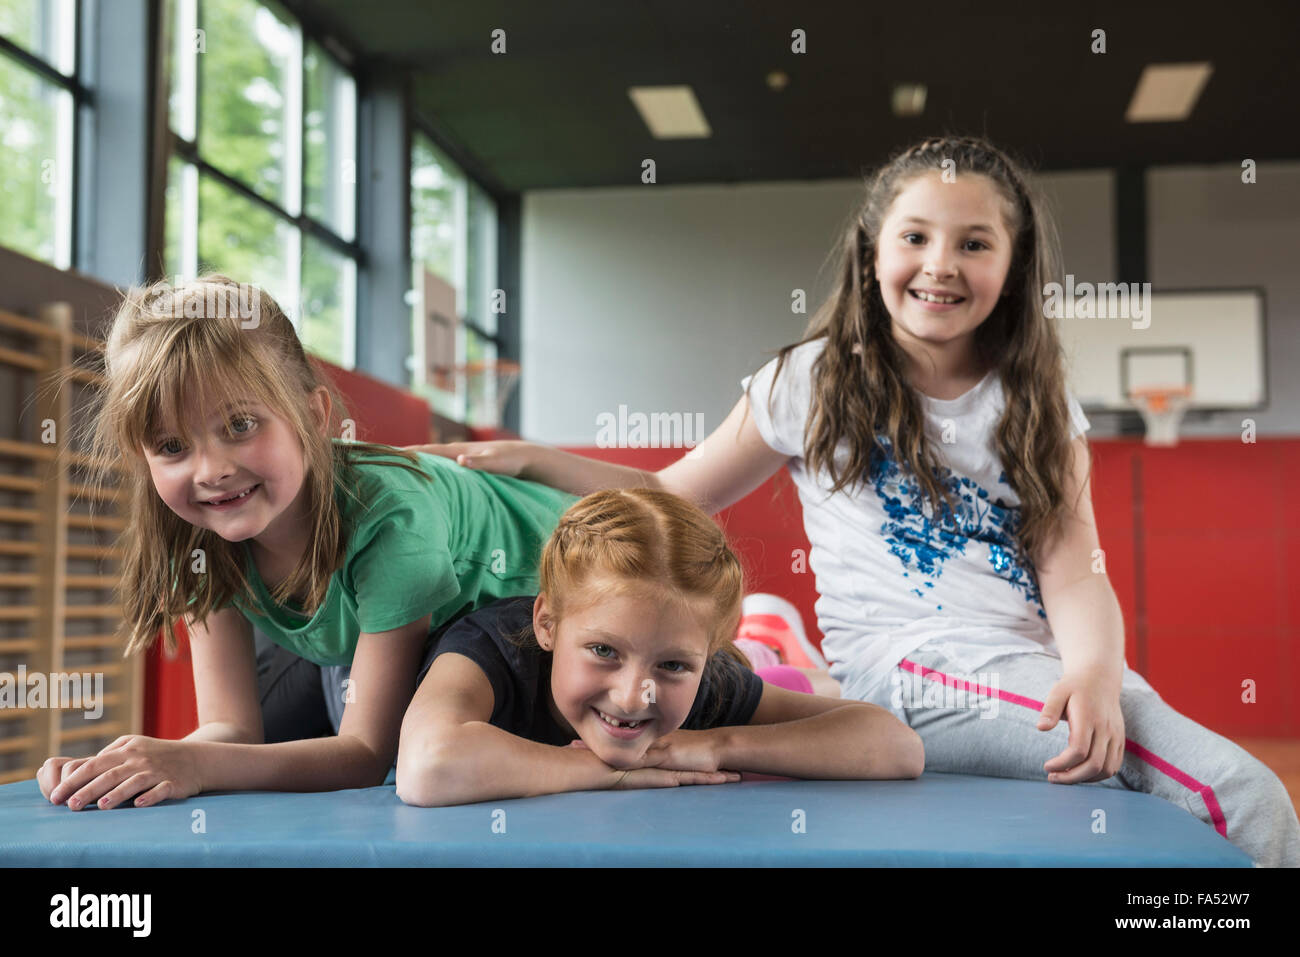 Girls resting on exercise mat in sports hall, Bavaria, Munich, Germany Stock Photo